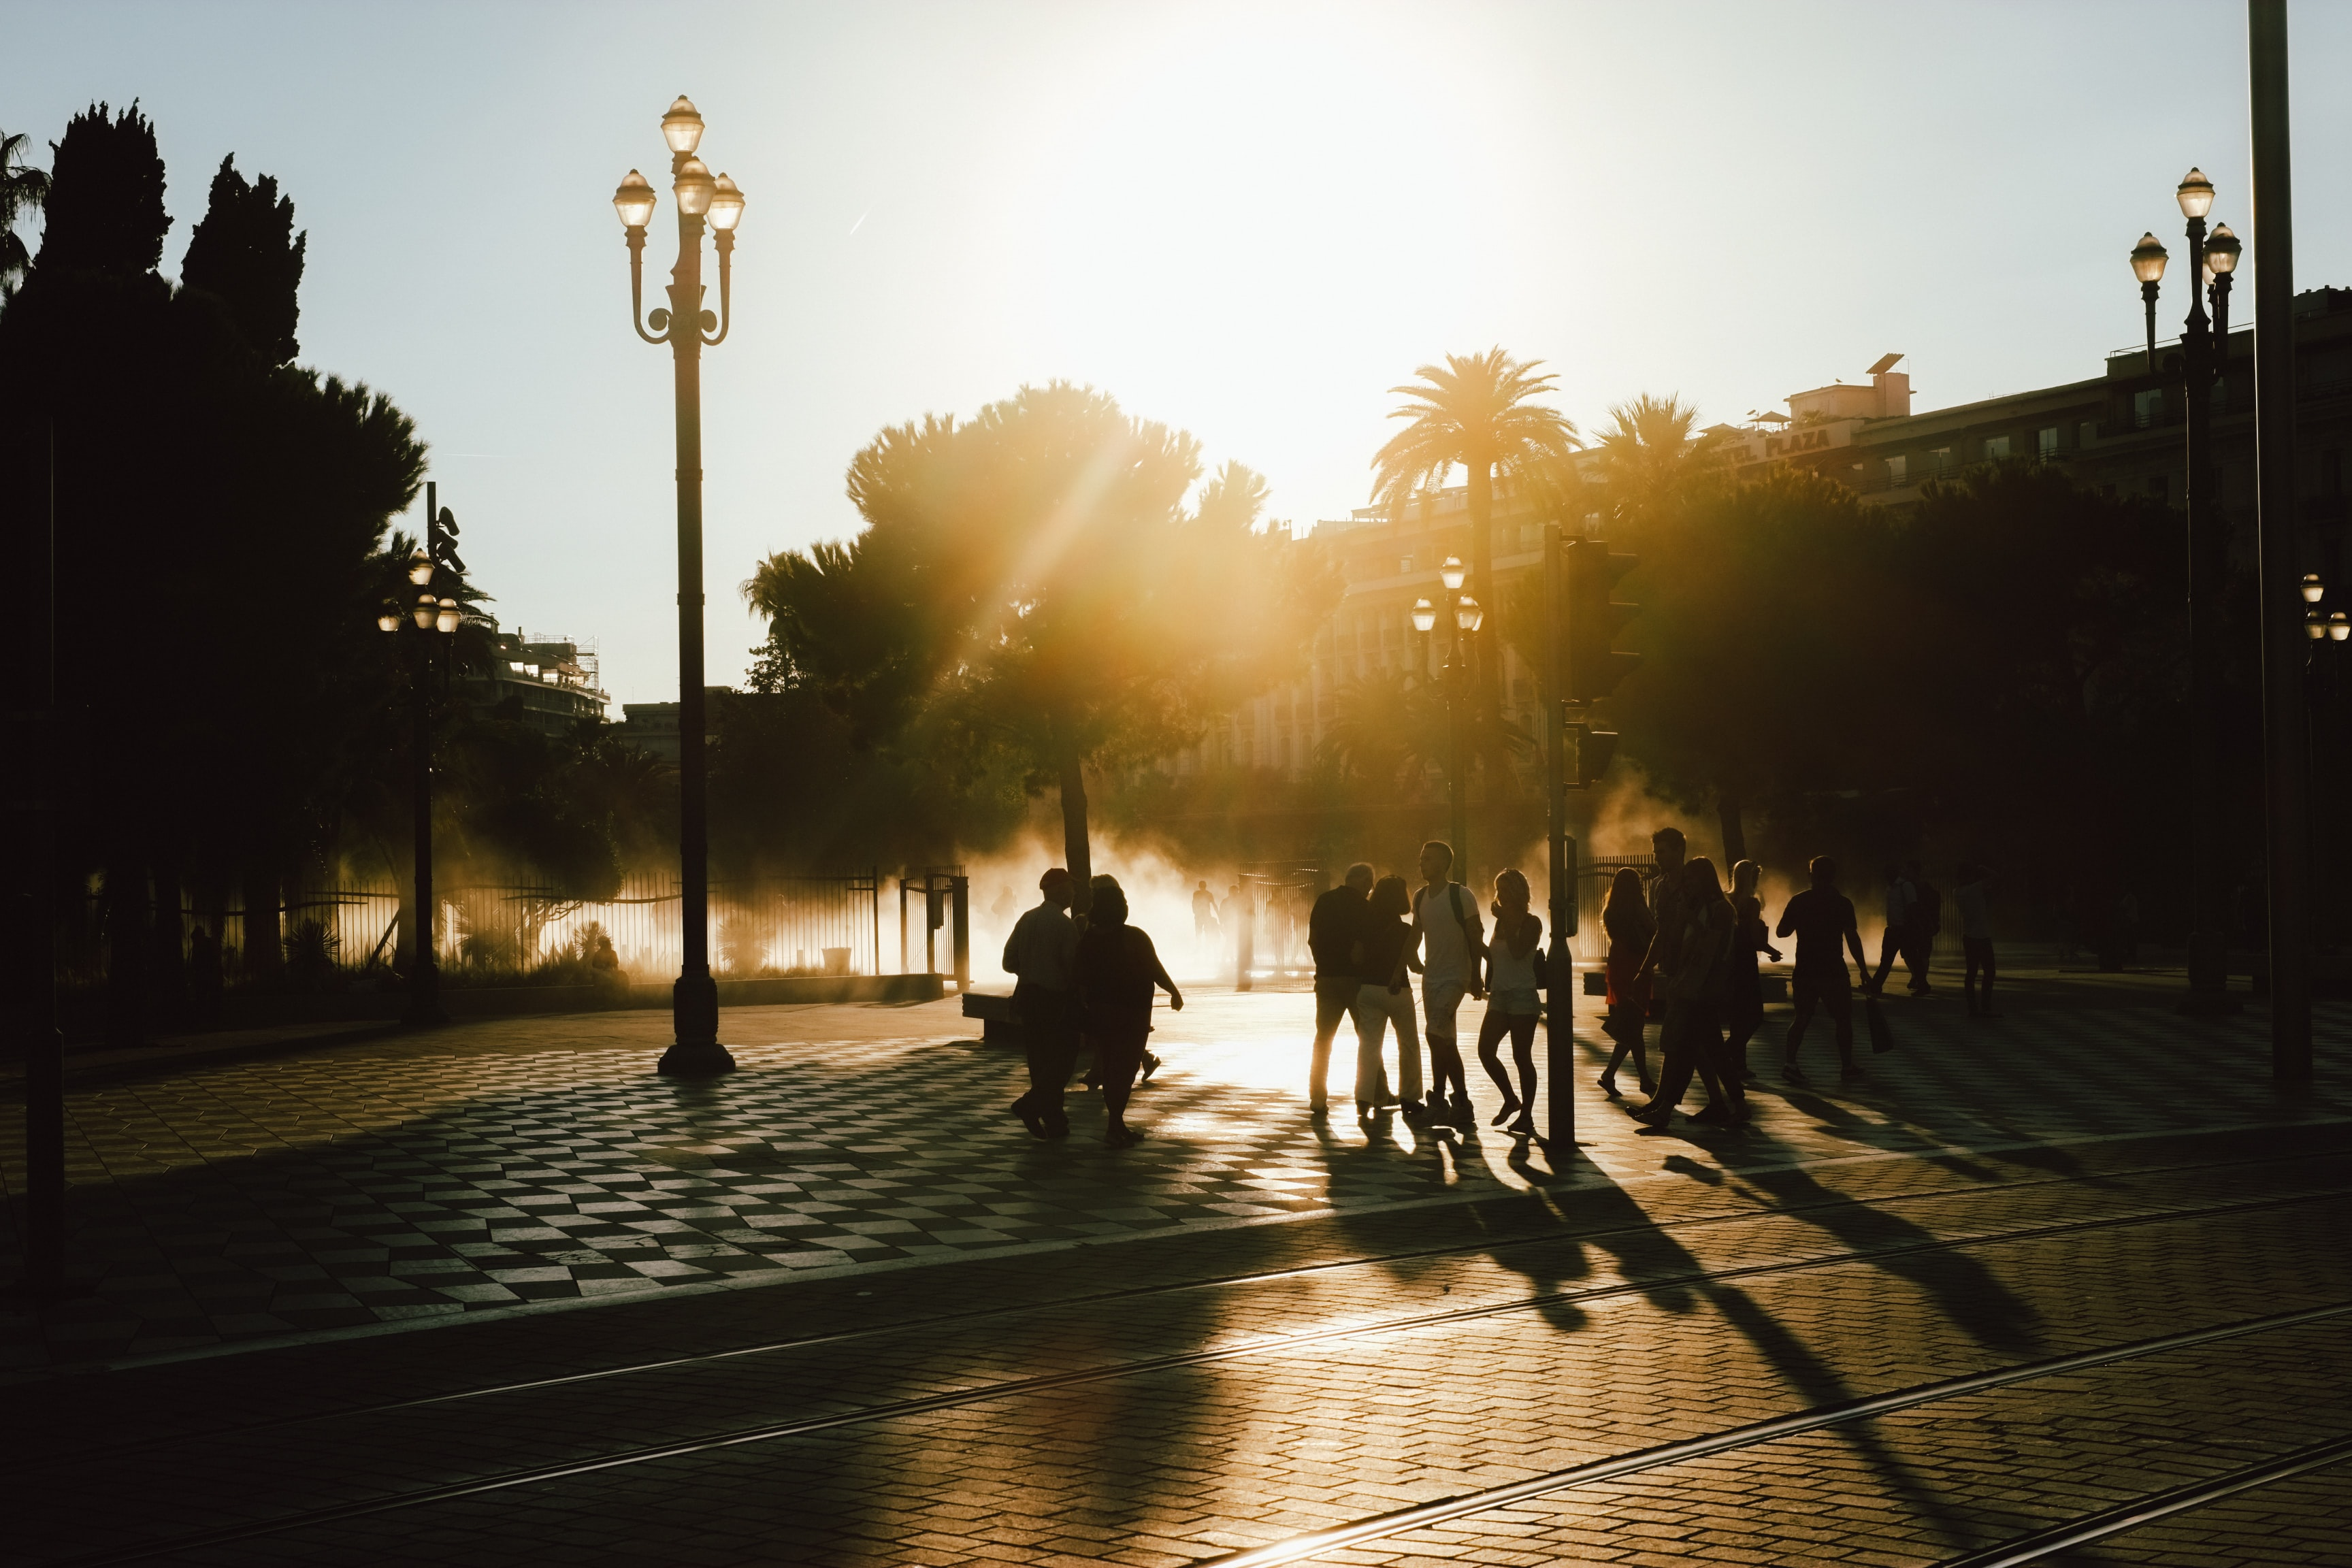 silhouette photo of people at park during golden hour